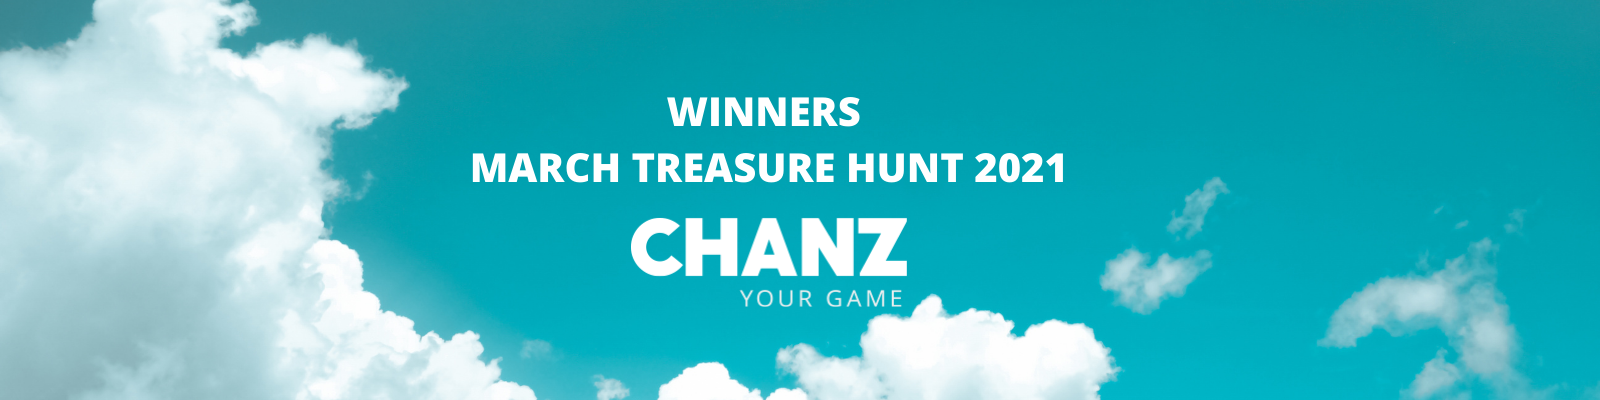 Winners – March Treasure Hunt